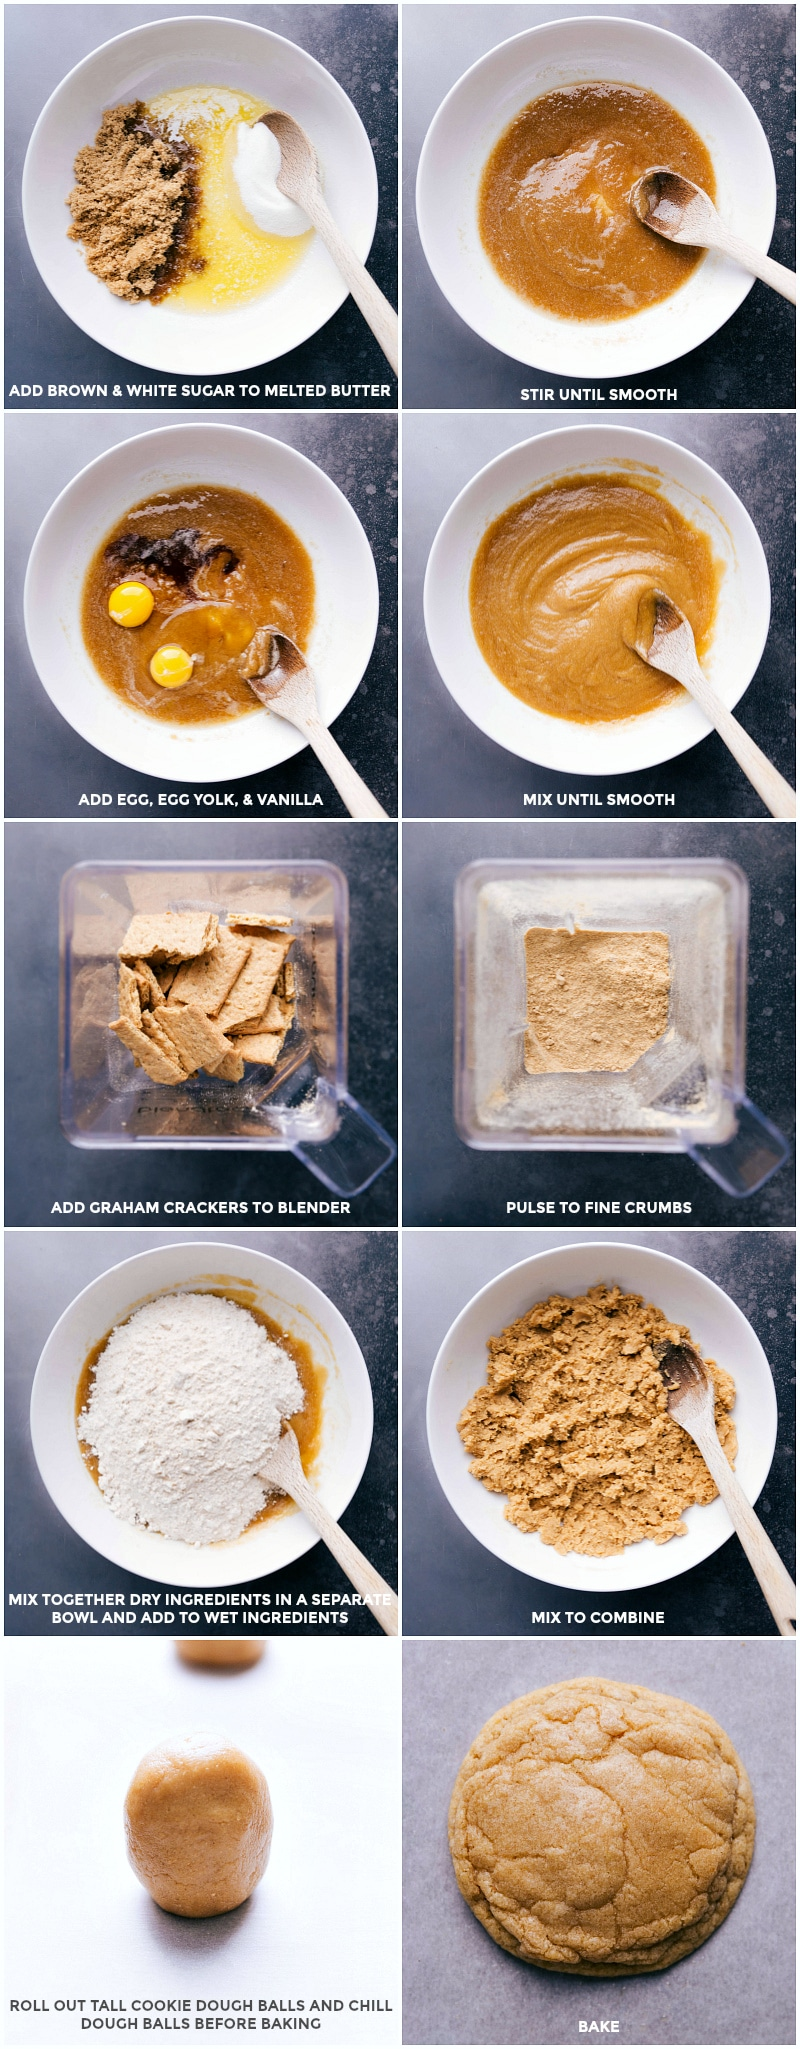 Process steps: Combine all the wet ingredients; blend the graham crackers to make crumbs; stir crumbs into the batter; shape into tall cylinders; bake.